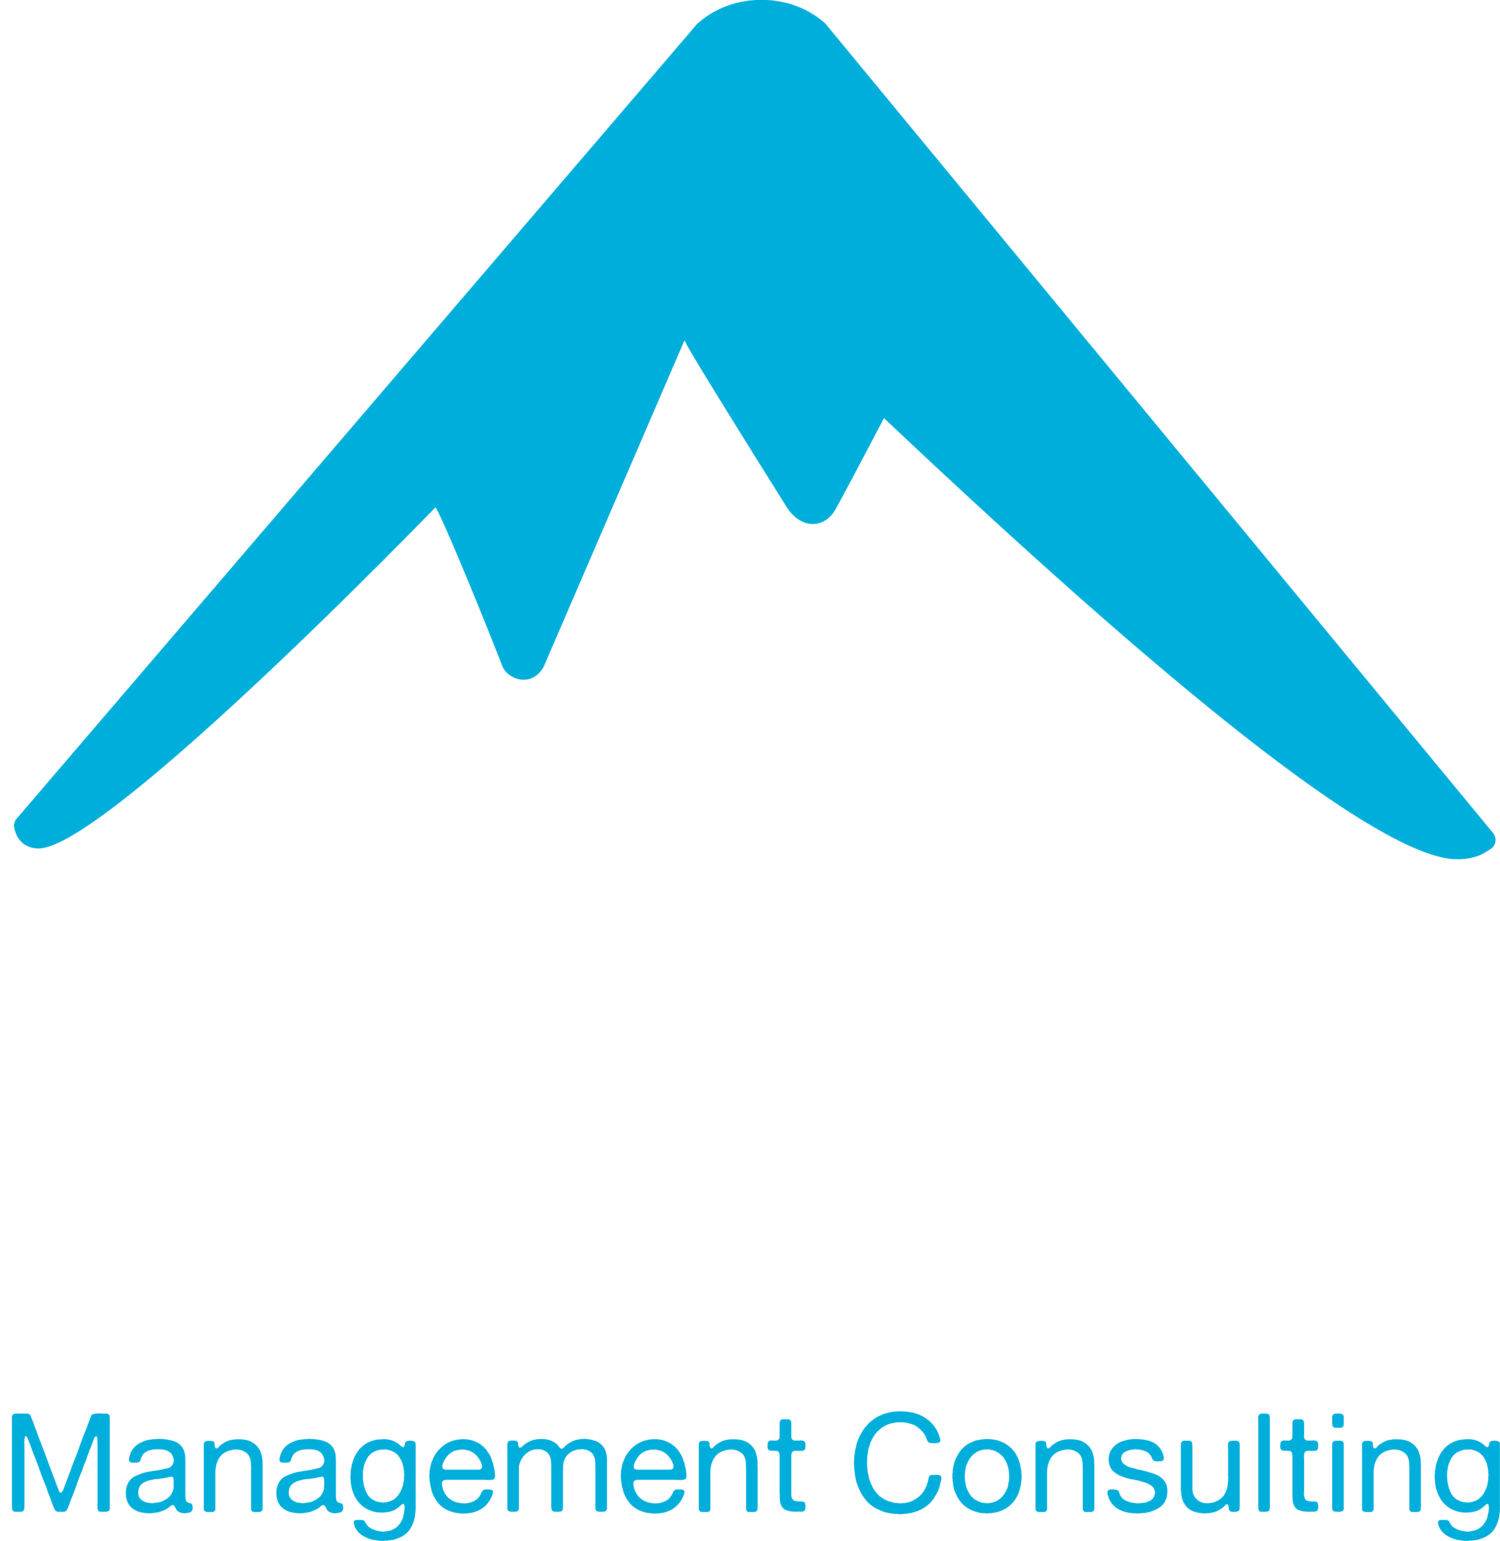 Alpine Management Consulting, LLC